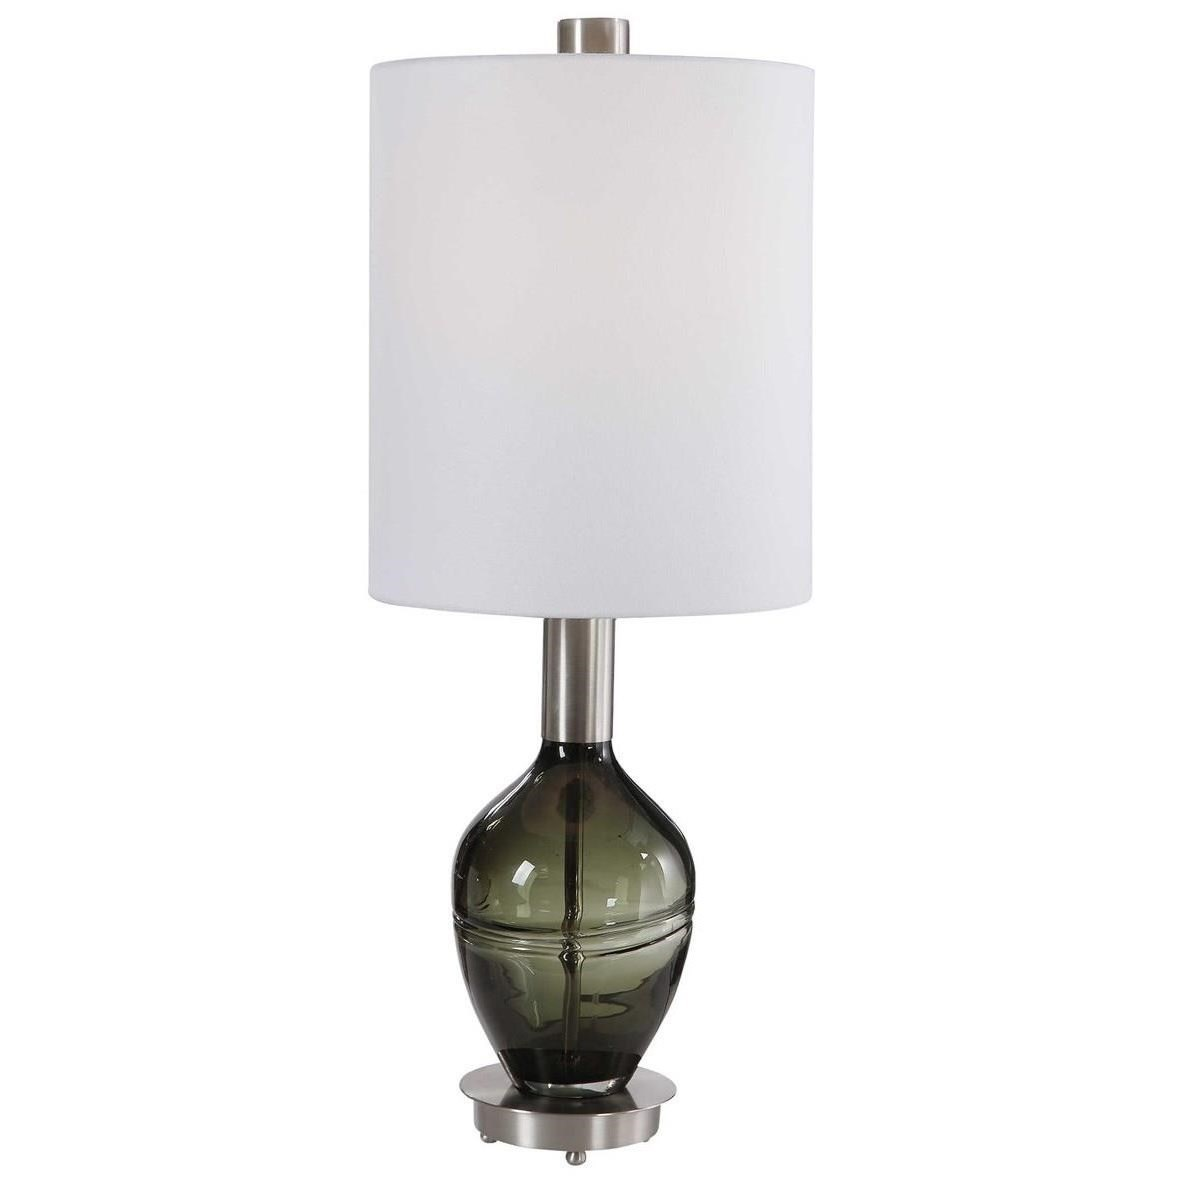 Accent Lamps Aderia Sage Green Accent Lamp at Becker Furniture